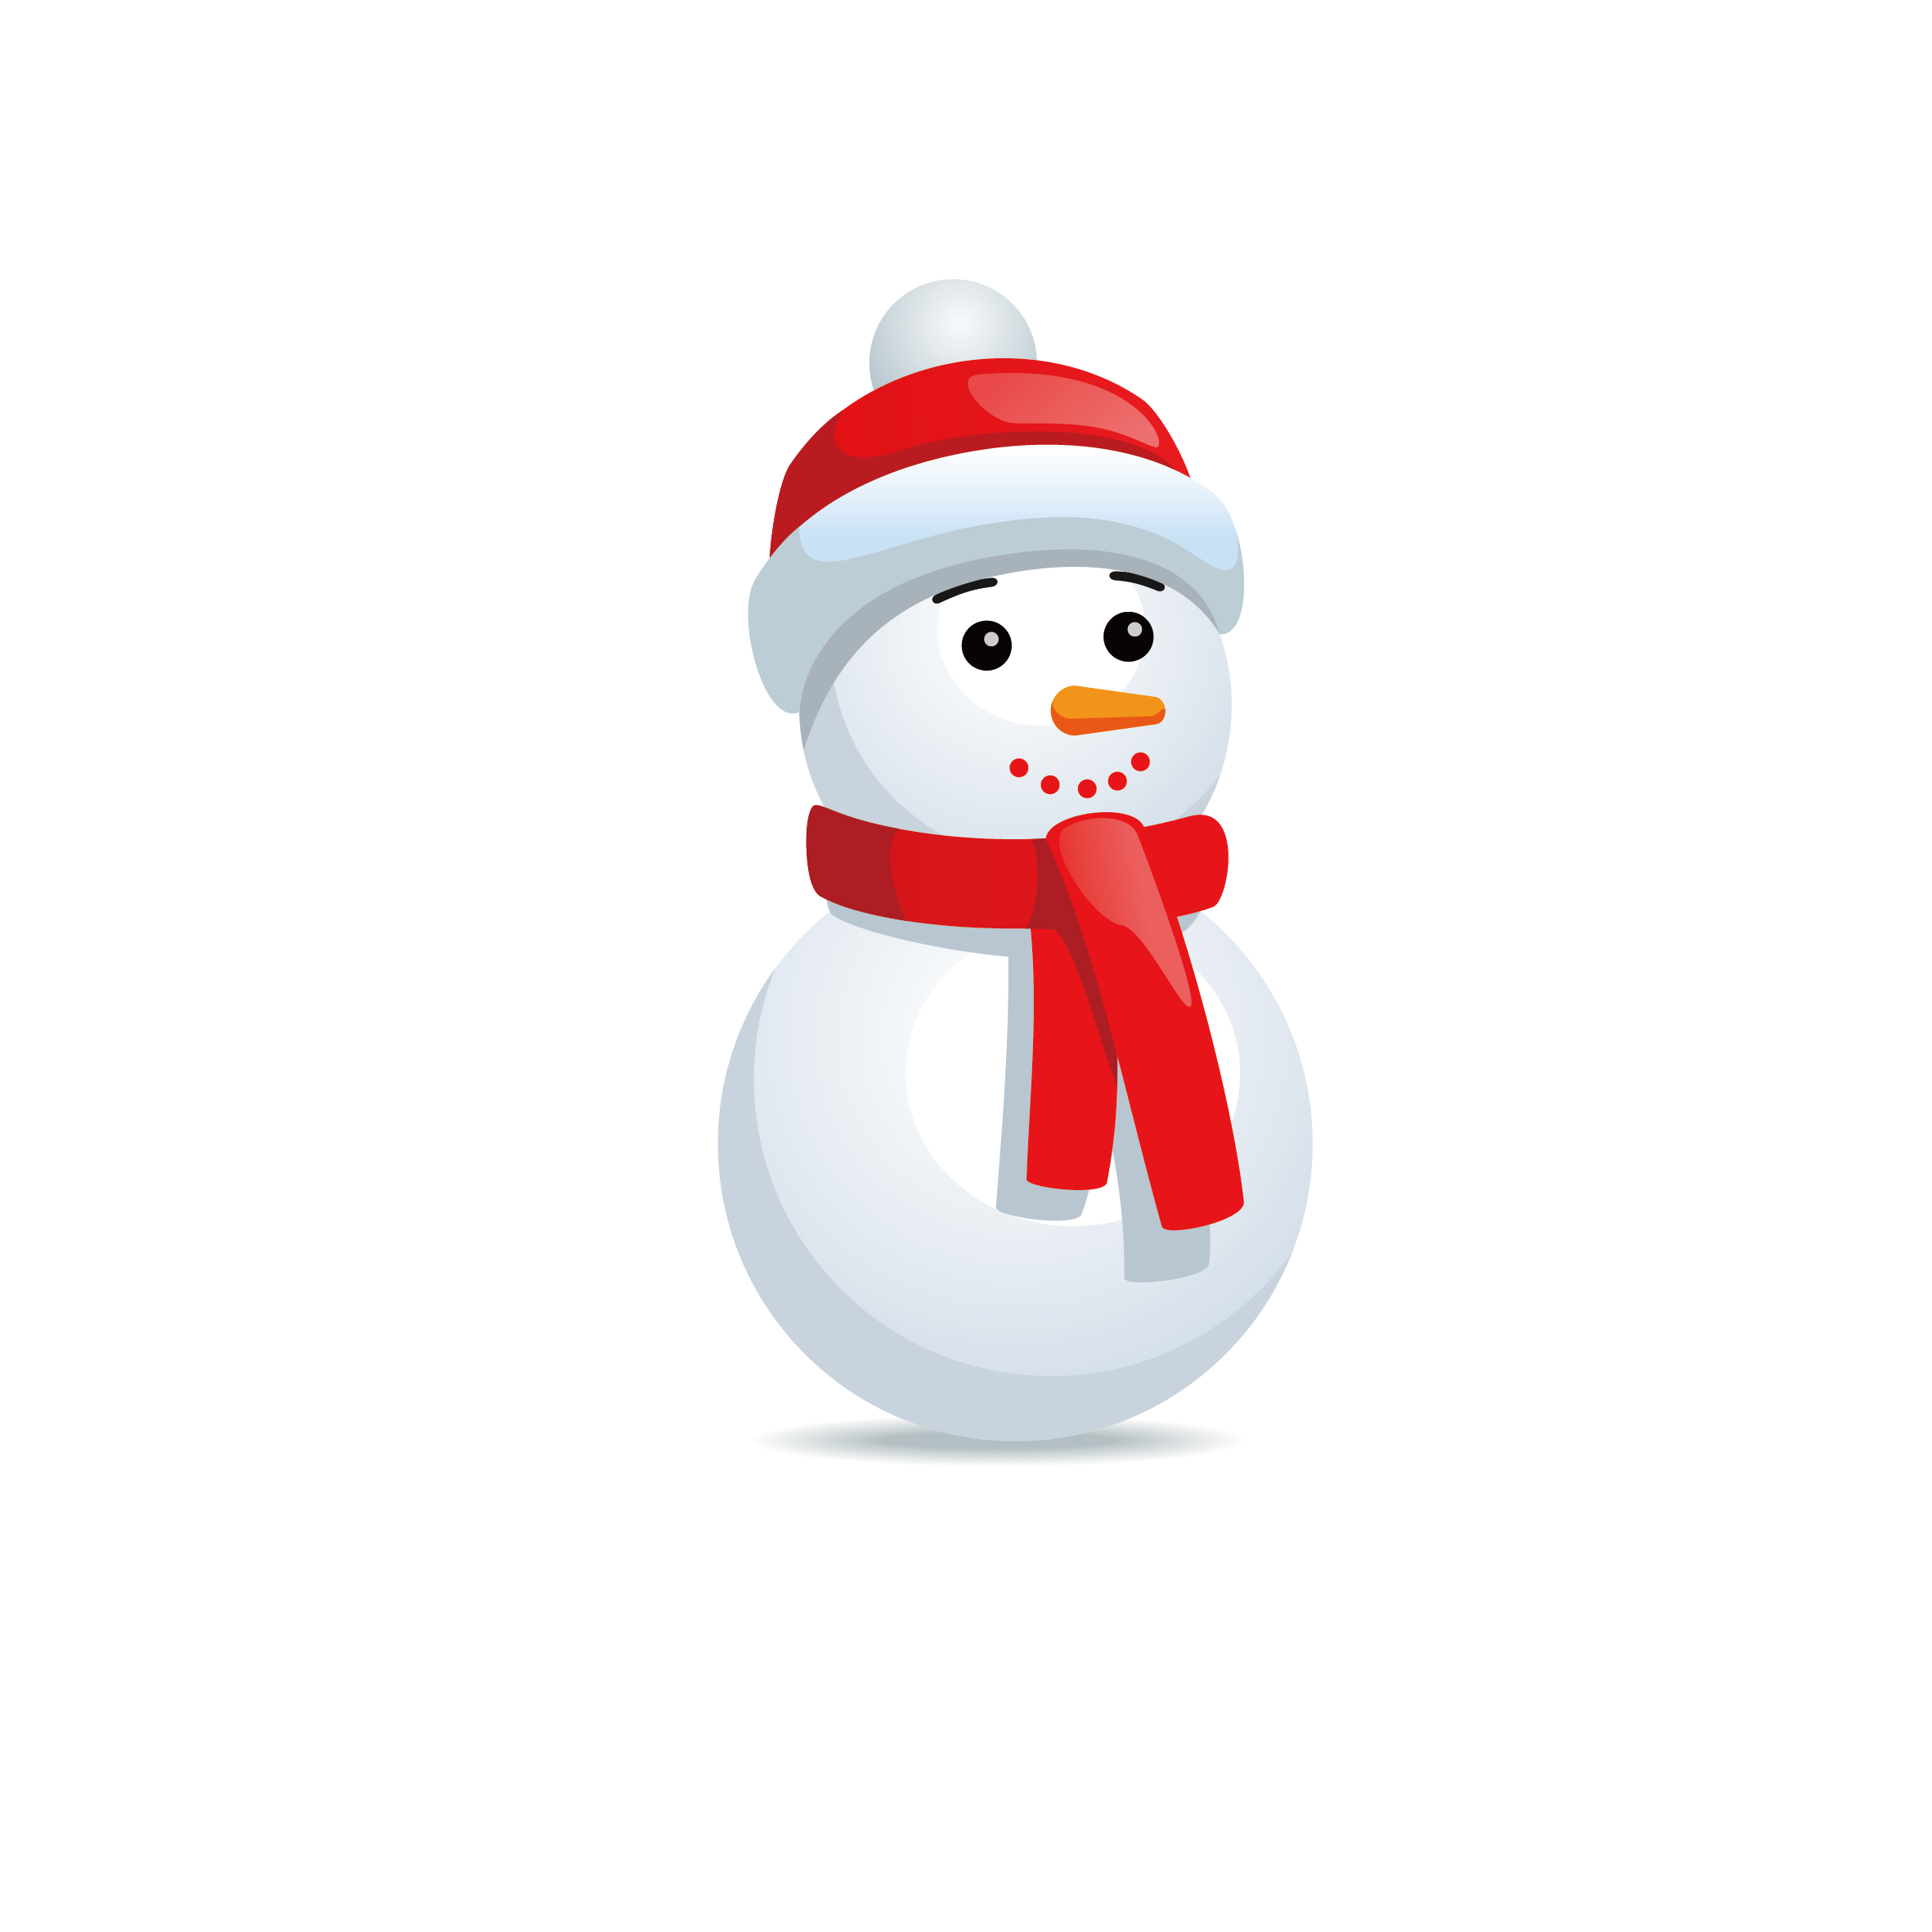 Christmas Pictures Free Download.Download Snowman Vector Design Christmas Icon Free Download